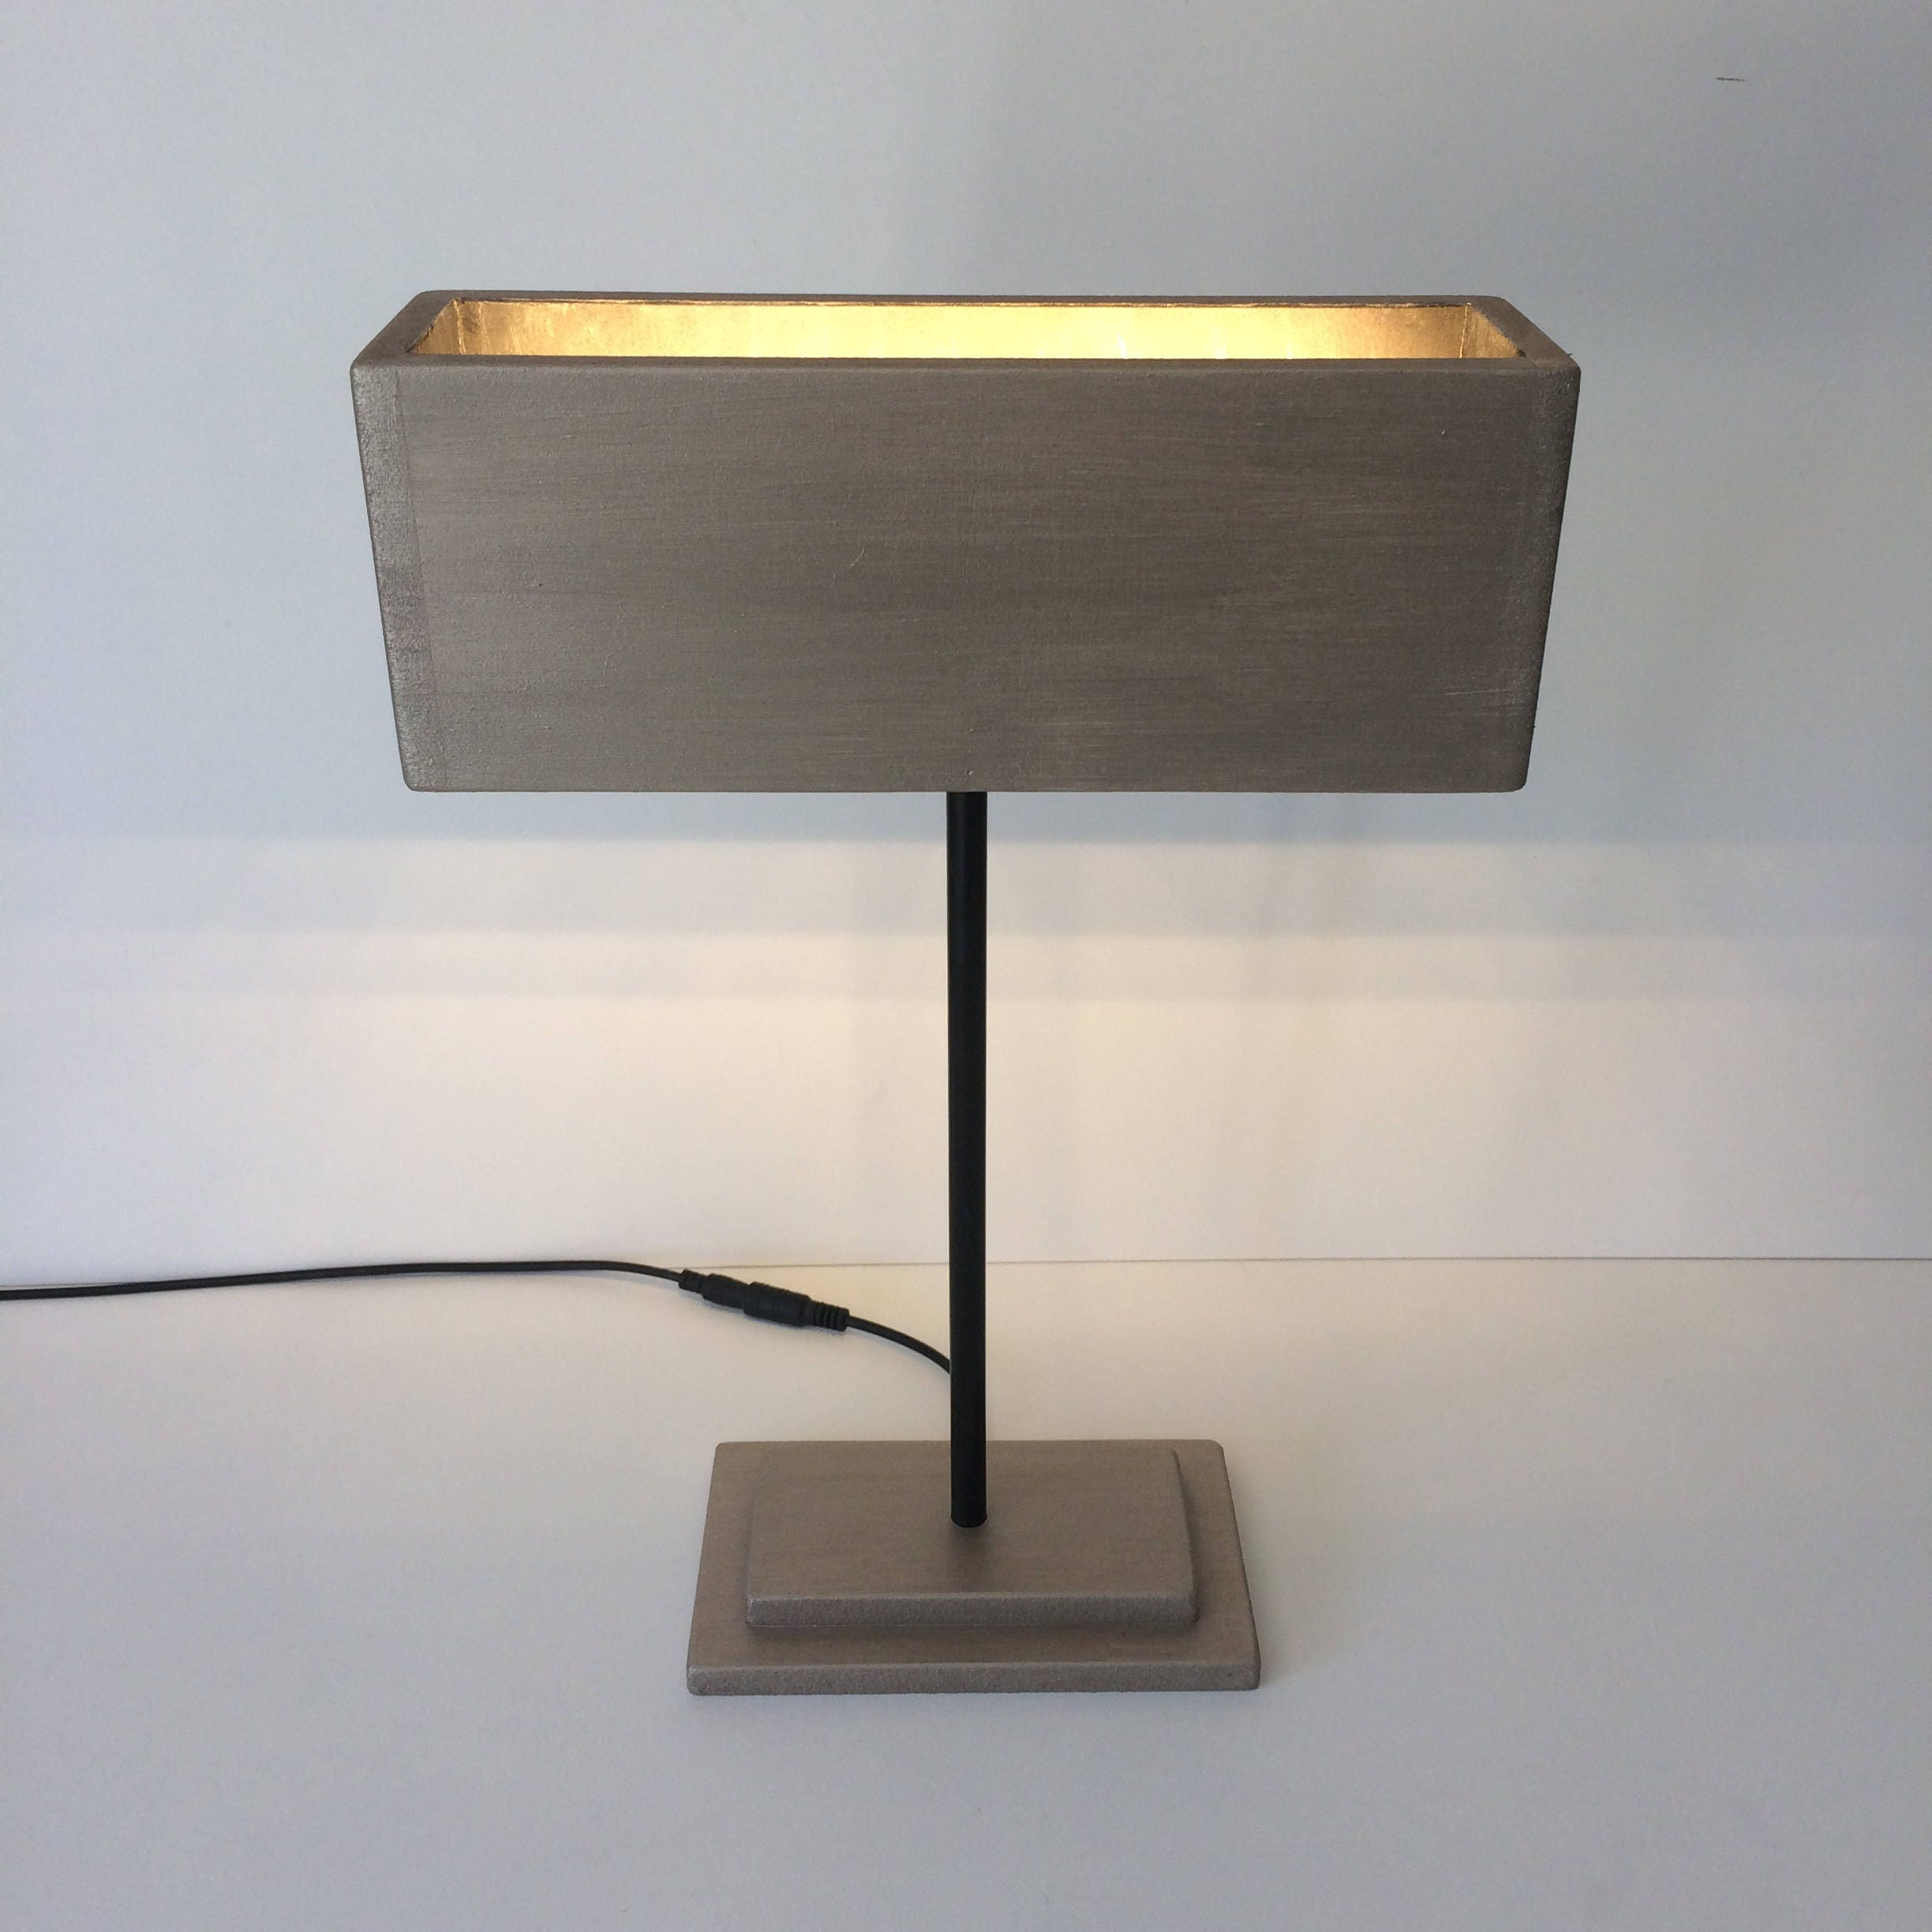 modern table lamp led contemporary light desk lamp stylish unusual  - modern table lamp led contemporary light desk lamp stylish unusual lightingreading lamp accent